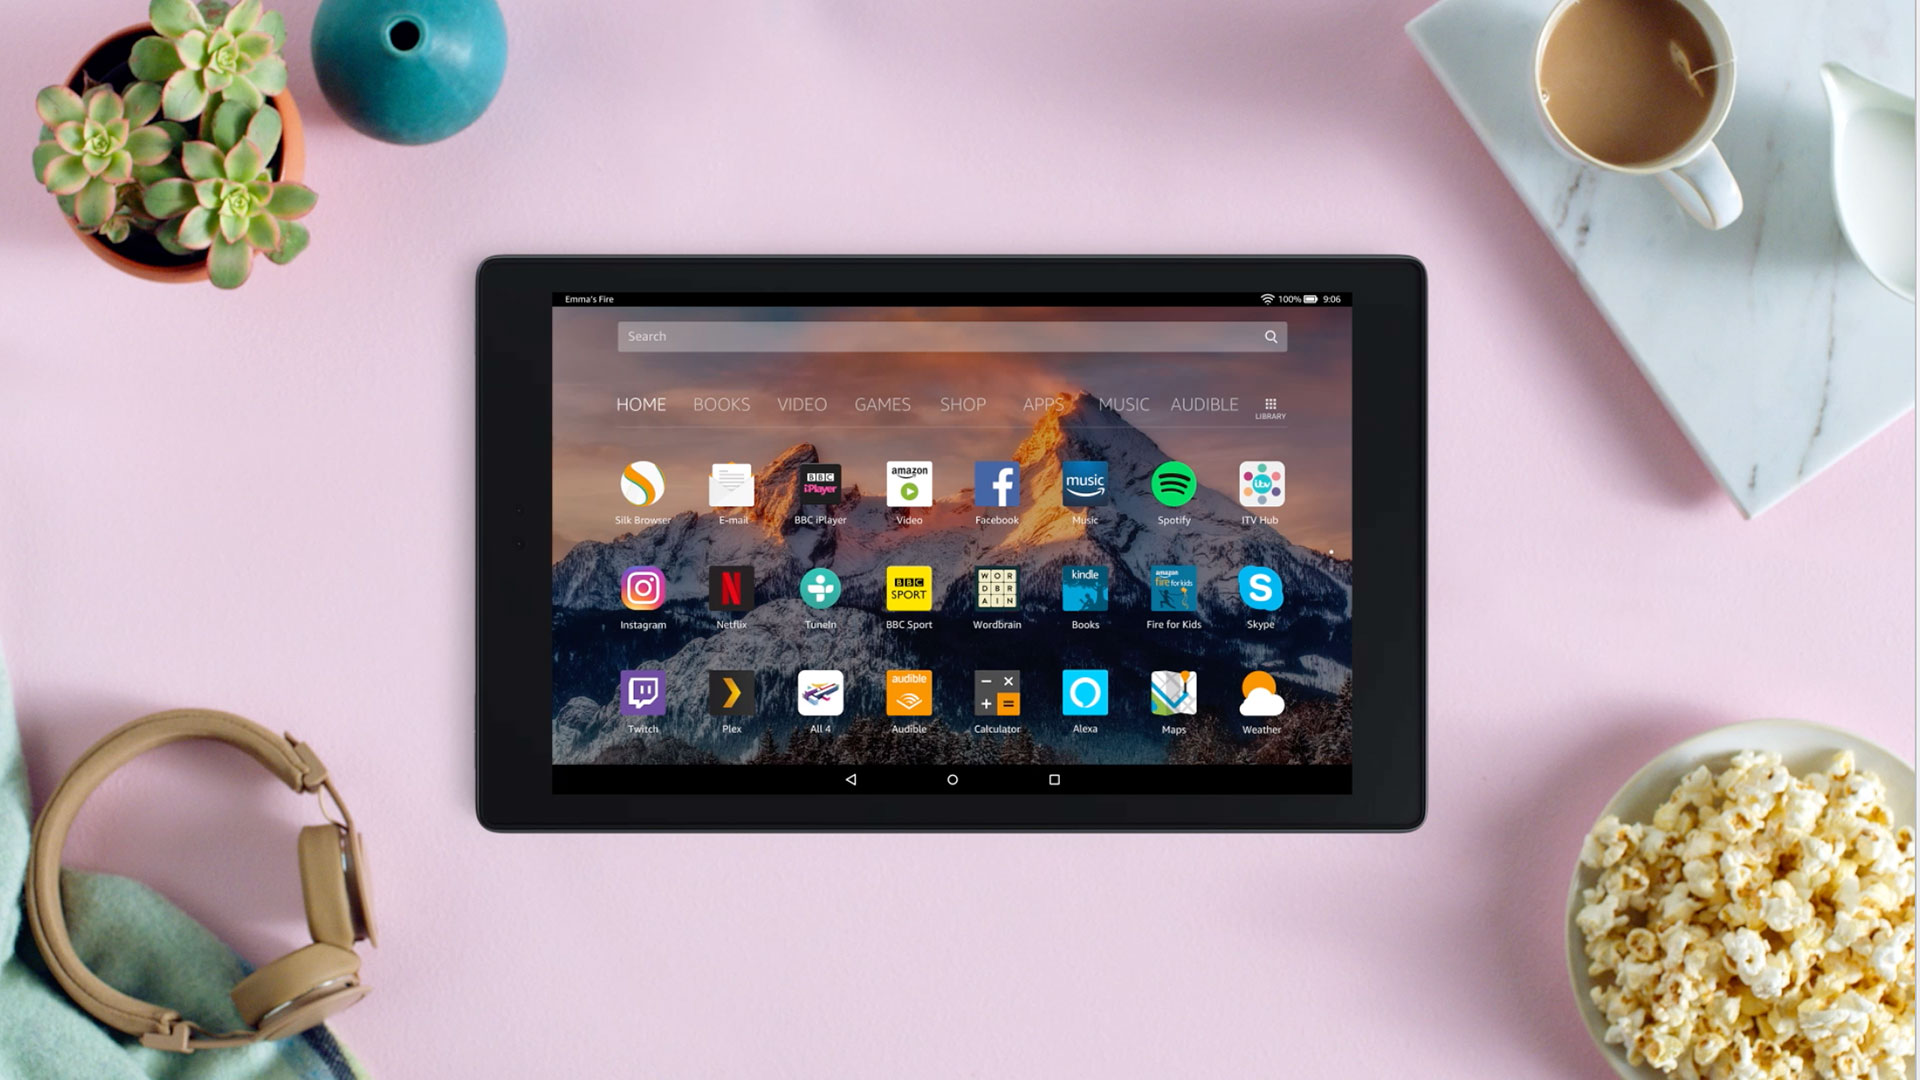 d487dc81c Fire HD 10 Tablet with Alexa hands-free and 10-inch screen